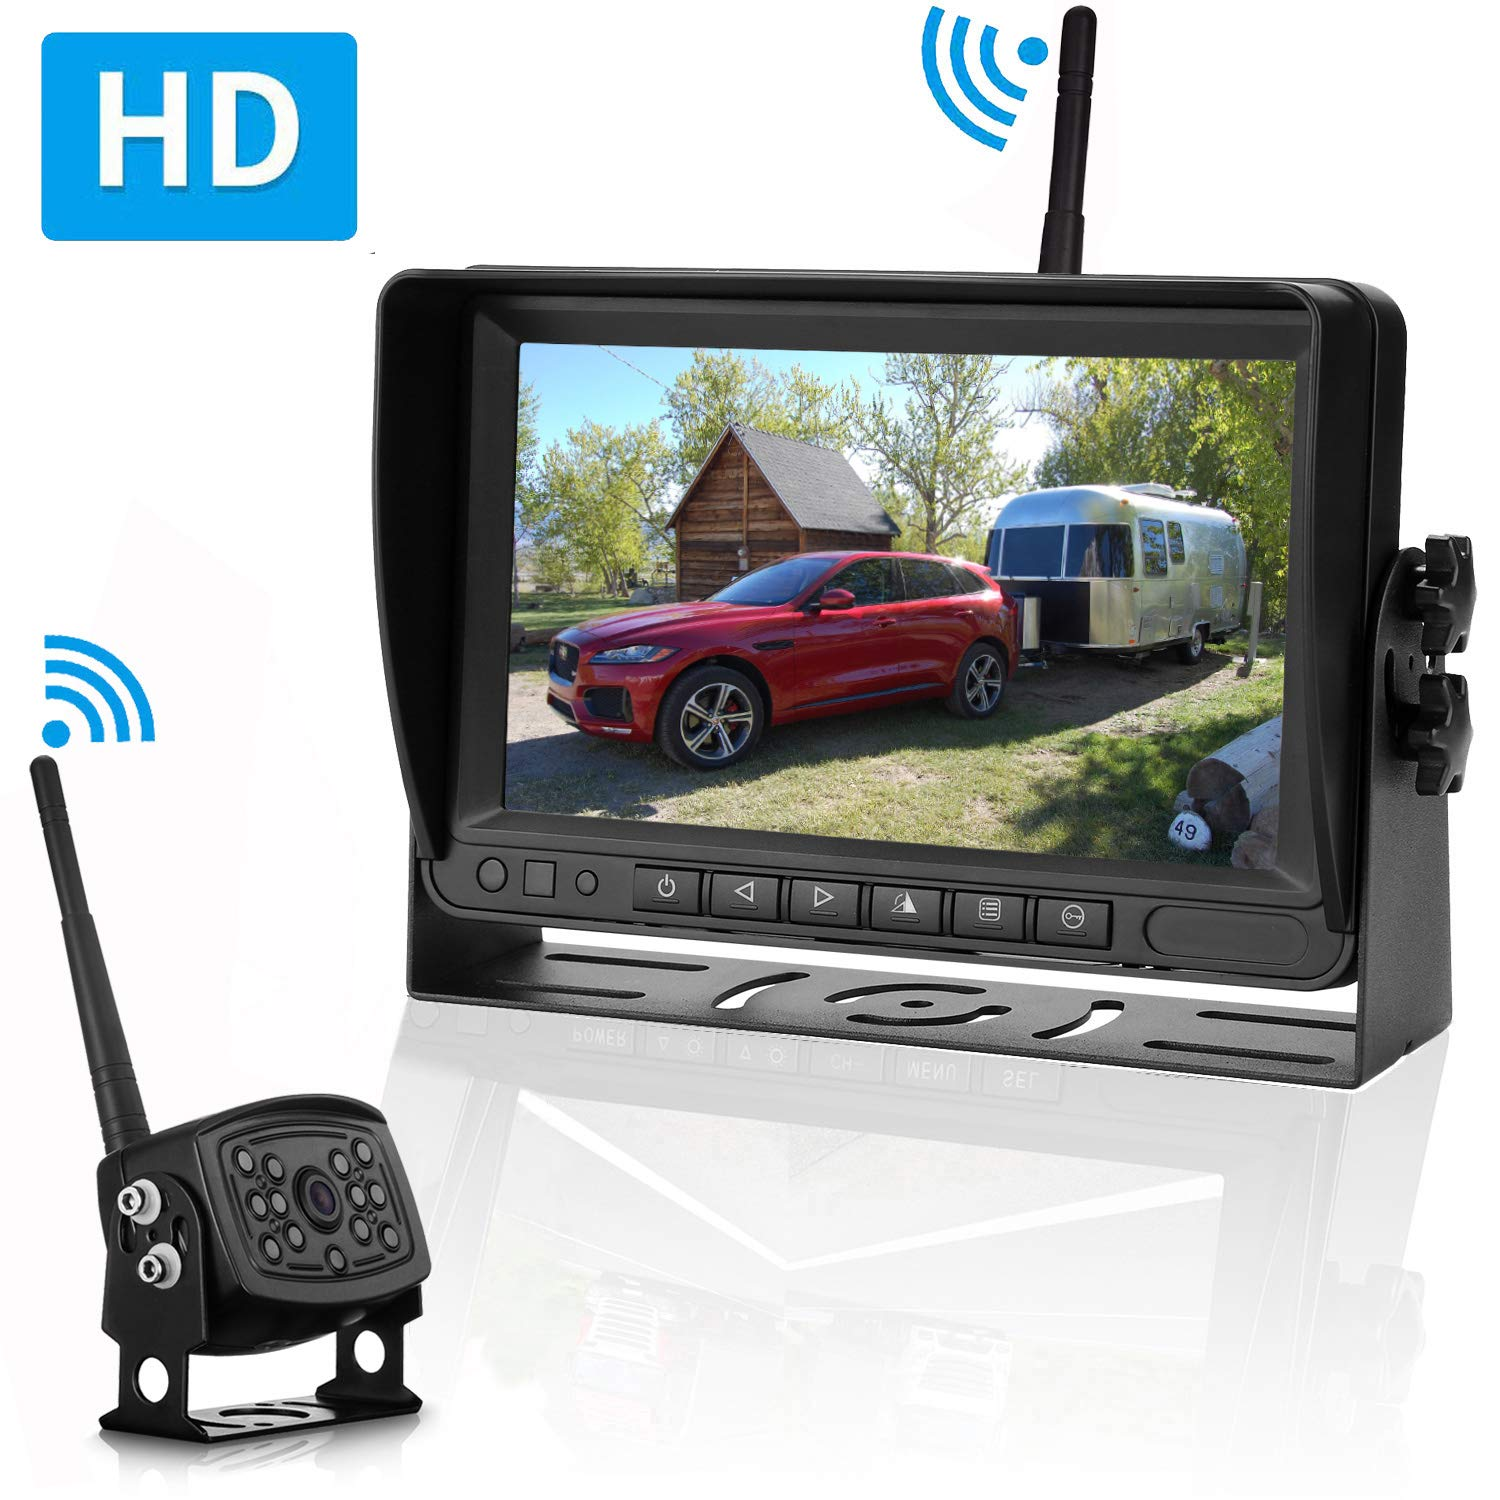 Amtifo Digital Wireless Backup Camera and 7'' Monitor For RVs,Trucks,Trailers,High-Speed Observation System With Stable Signal ,Adjustable Rear/Front View Camera, Guide Lines ON/Off, IP69K Waterproof by Amtifo